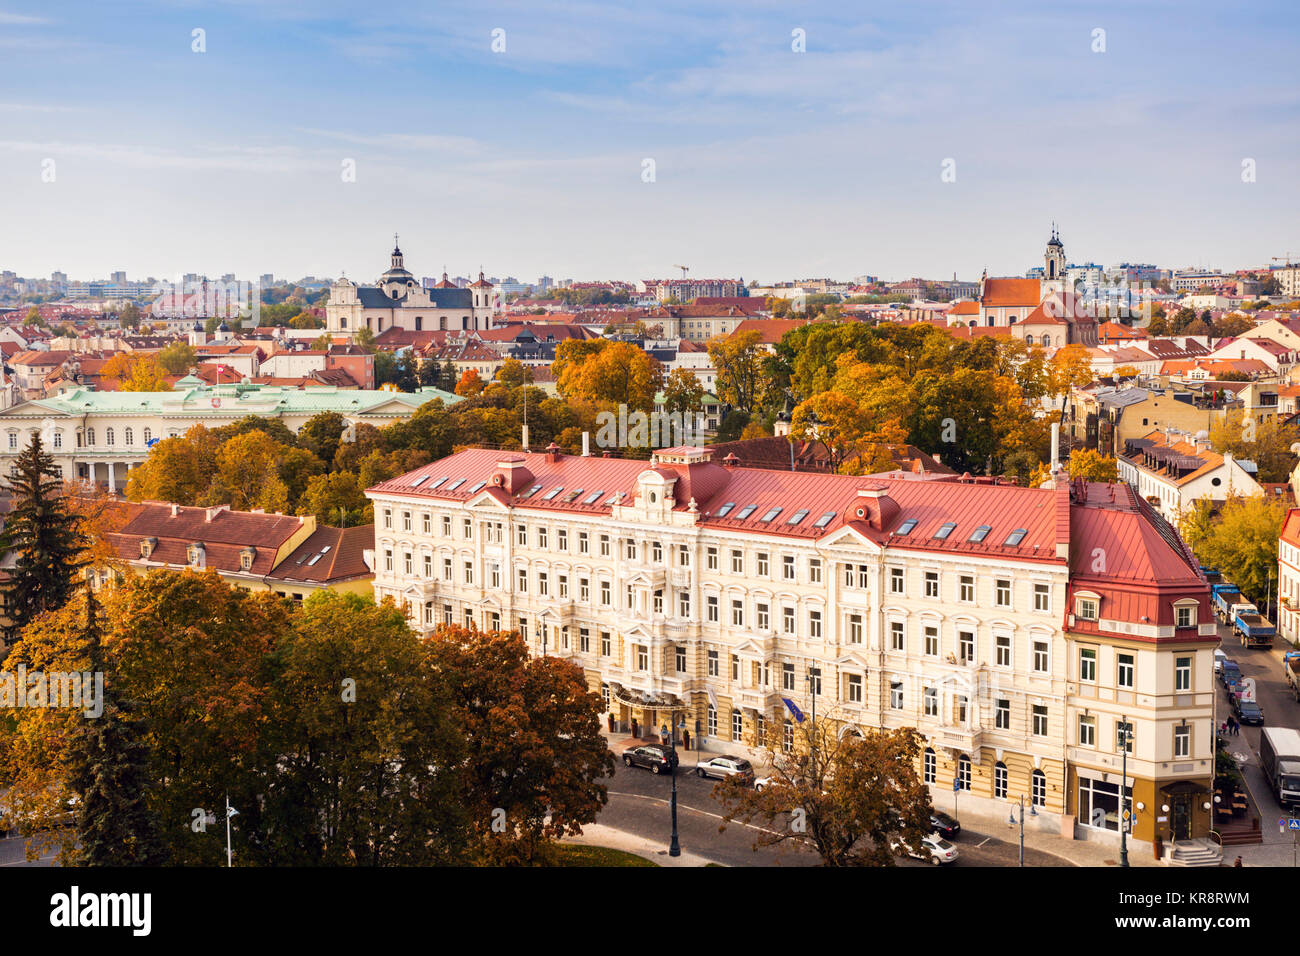 Lithuania, Vilnius, Cityscape of old town - Stock Image